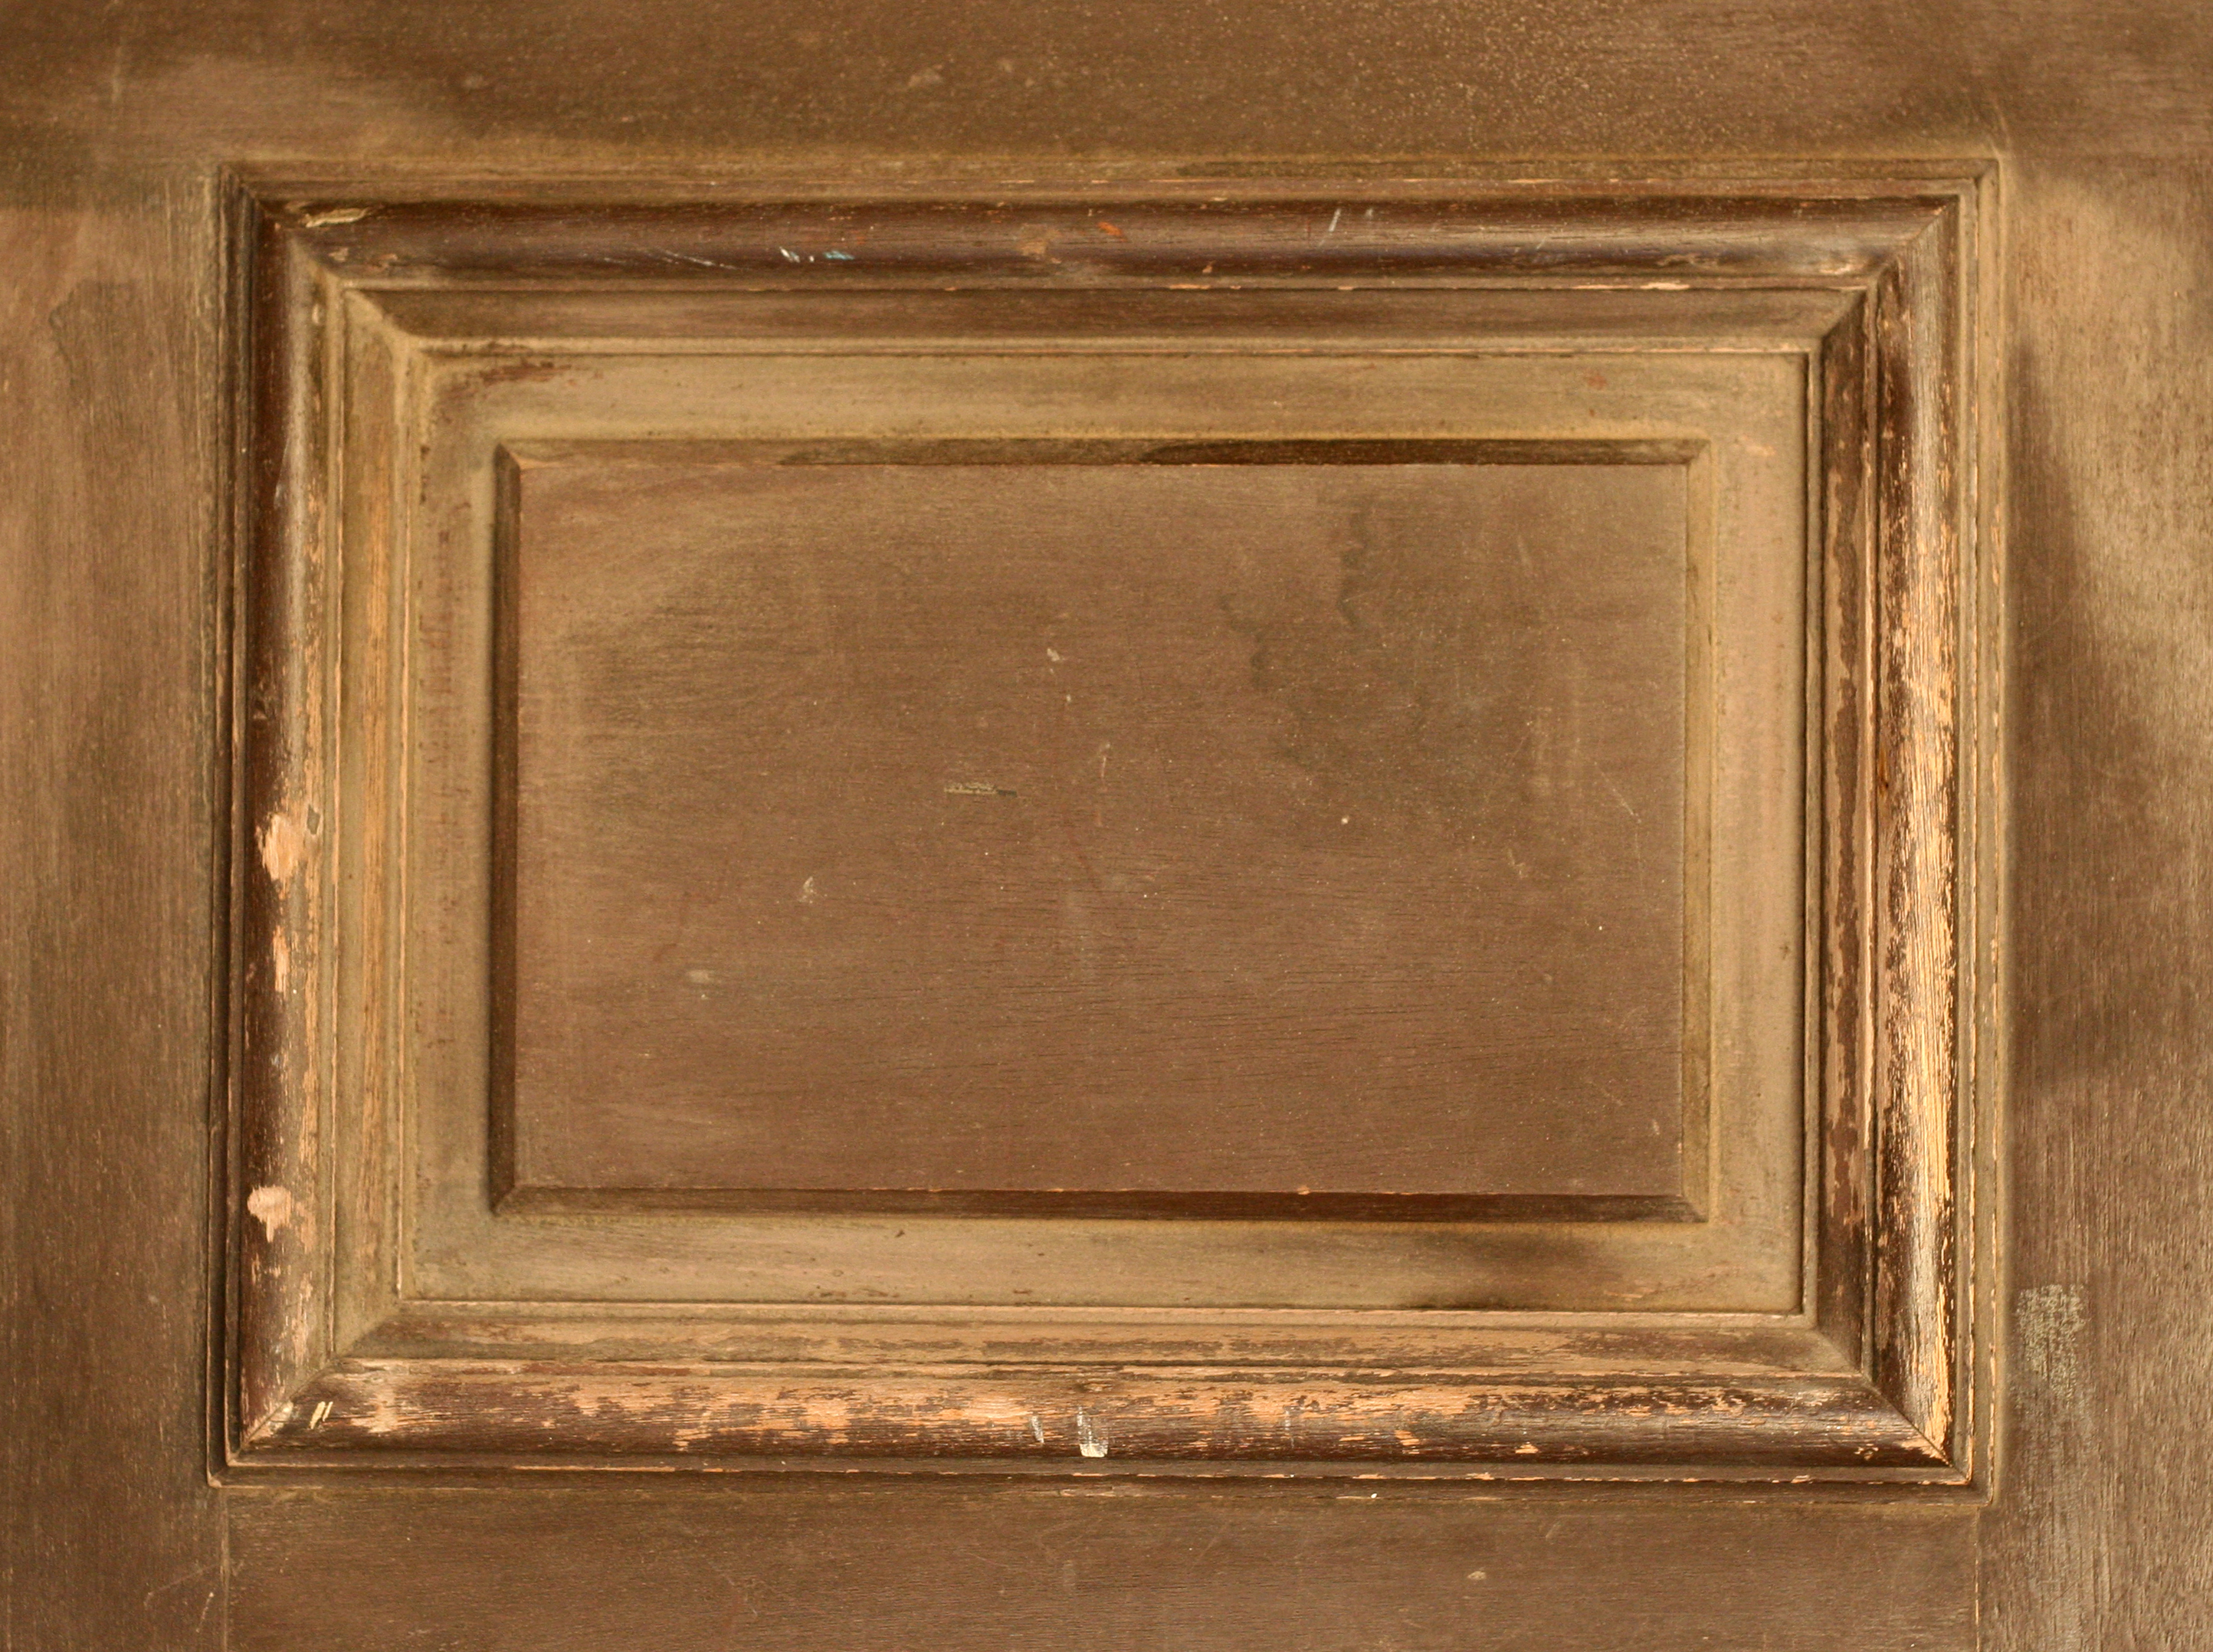 Old brown painted wooden frame | Free stock photographs and more for ...